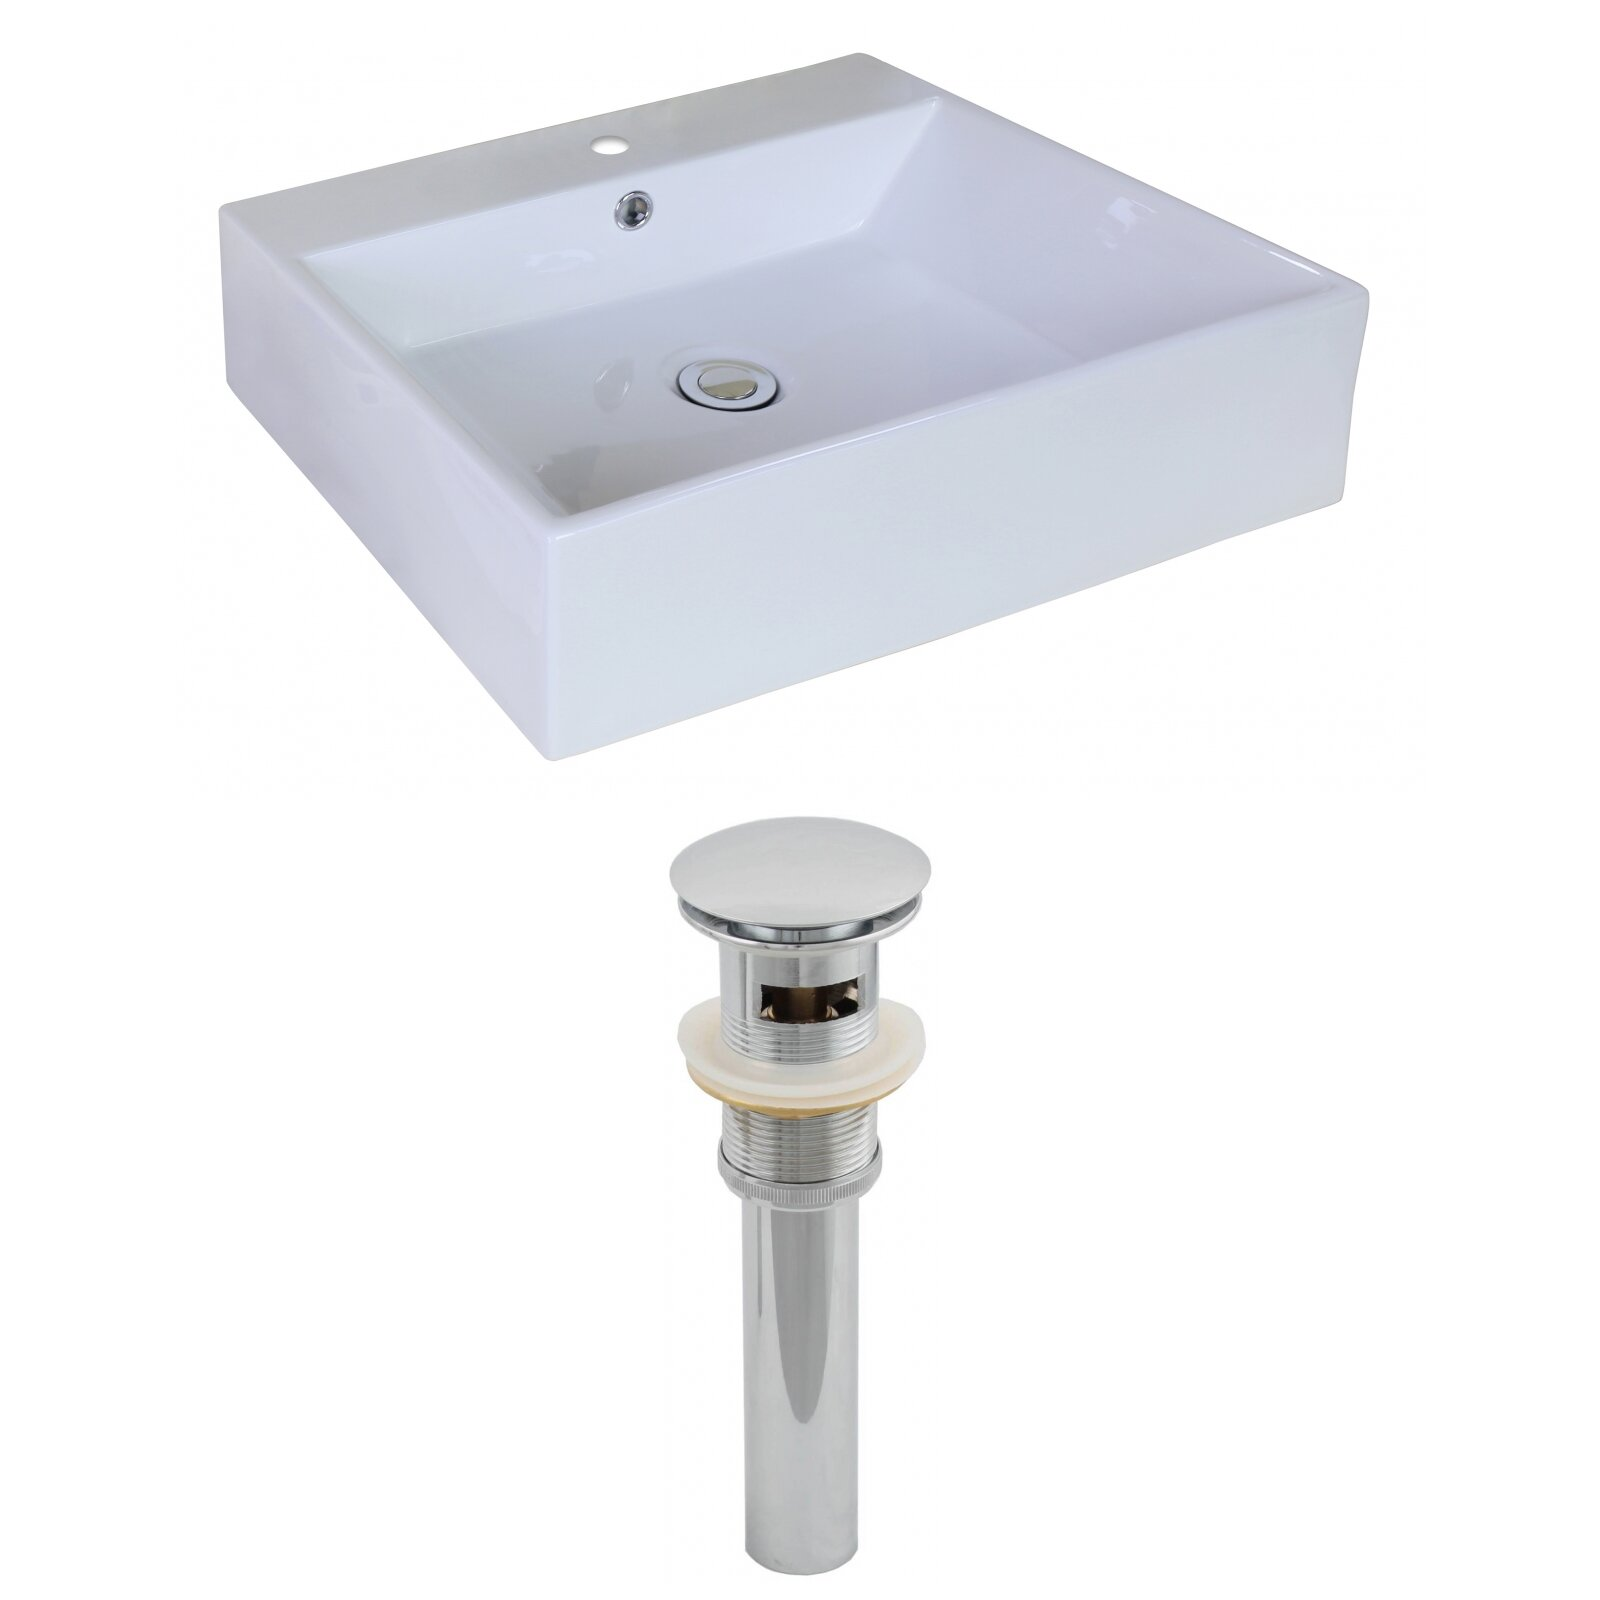 Vessel Sink Overflow : ... Imaginations Rectangle Vessel Sink with Overflow & Reviews Wayfair